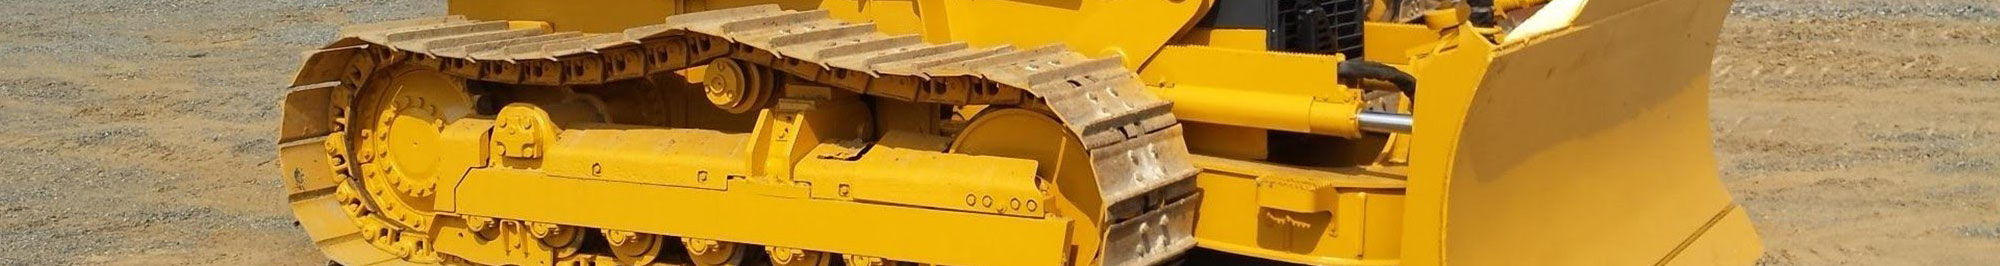 John Deere Bulldozer Undercarriage Replacement Parts